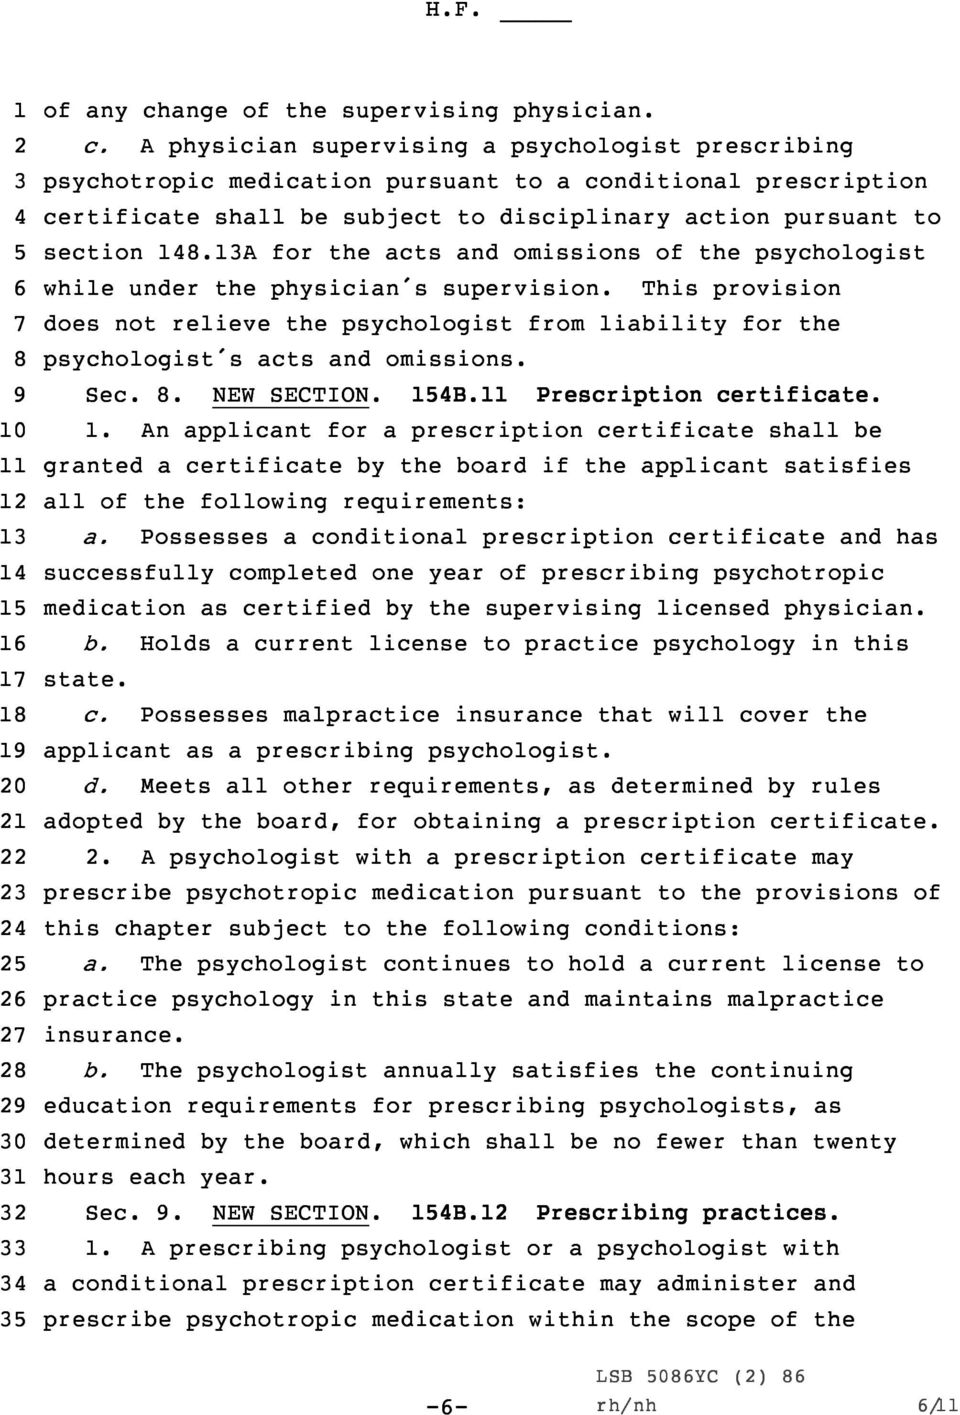 A physician supervising a psychologist prescribing psychotropic medication pursuant to a conditional prescription certificate shall be subject to disciplinary action pursuant to section.